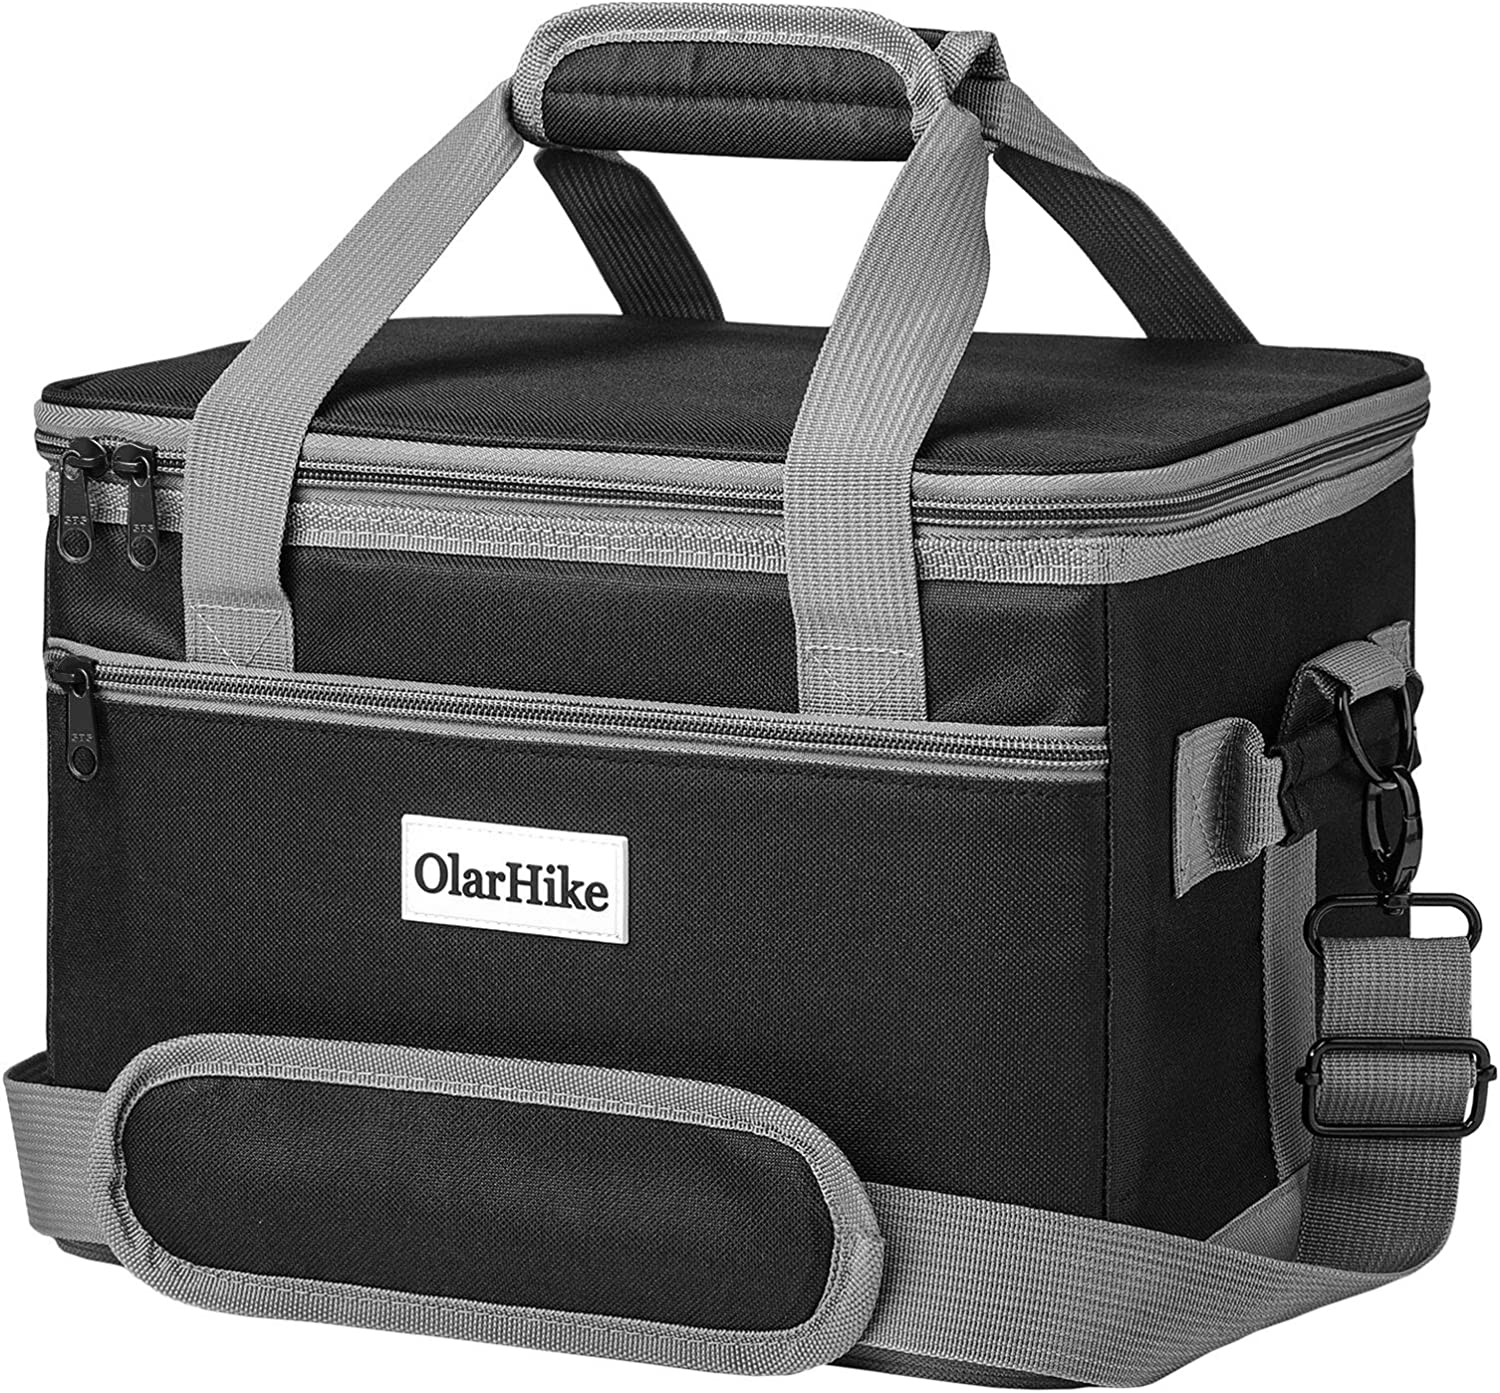 OlarHike Cooler Bag Lunch Bag, Collapsible and Insulated Lunch Box Leakproof Cooler Bag for Camping, Picnic, BBQ (24-Can, Black)